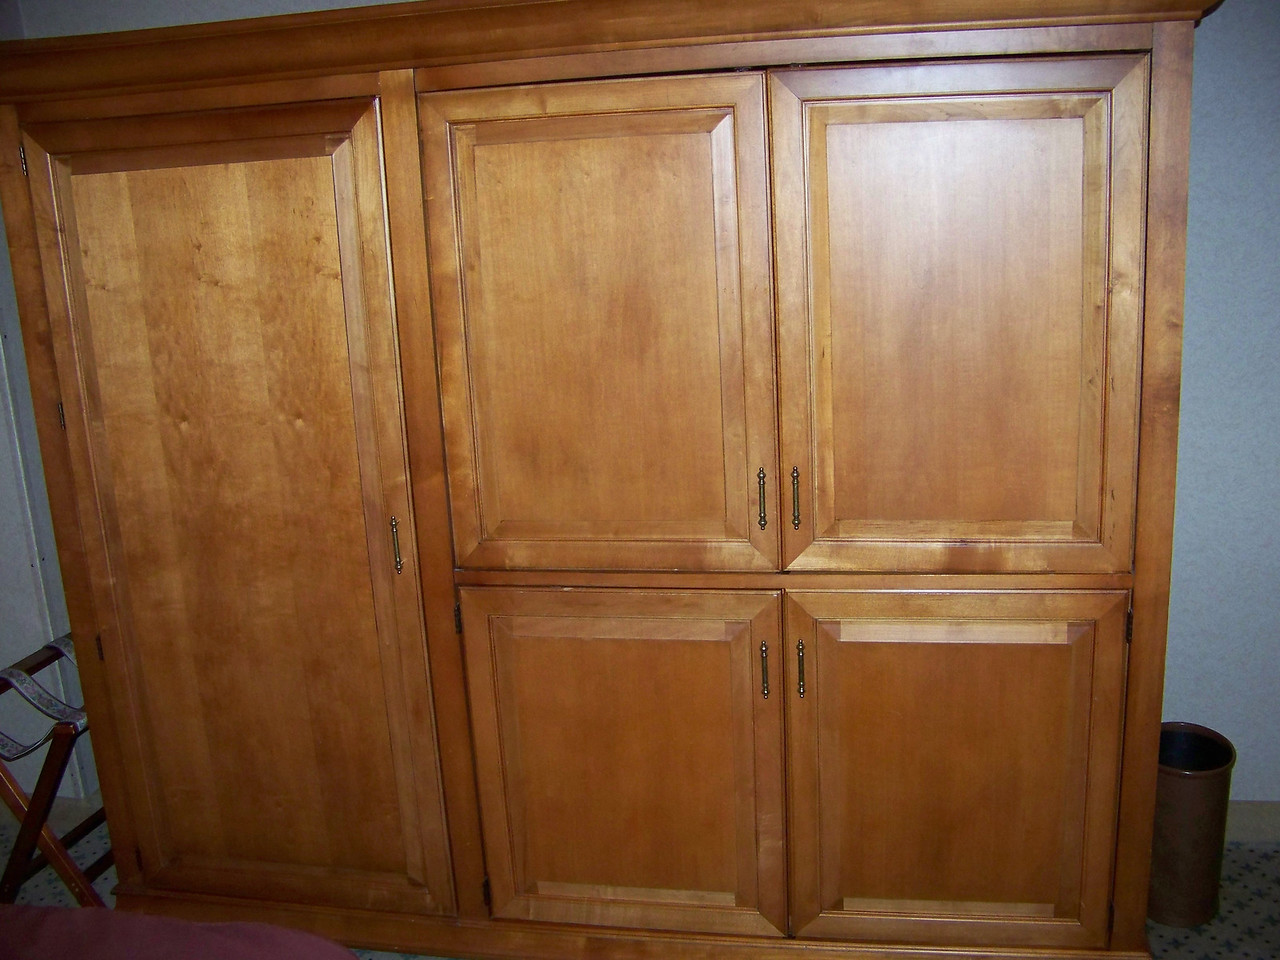 Harrah's east tower rooms include a very large, wooden armoire.<br /> [Reno]